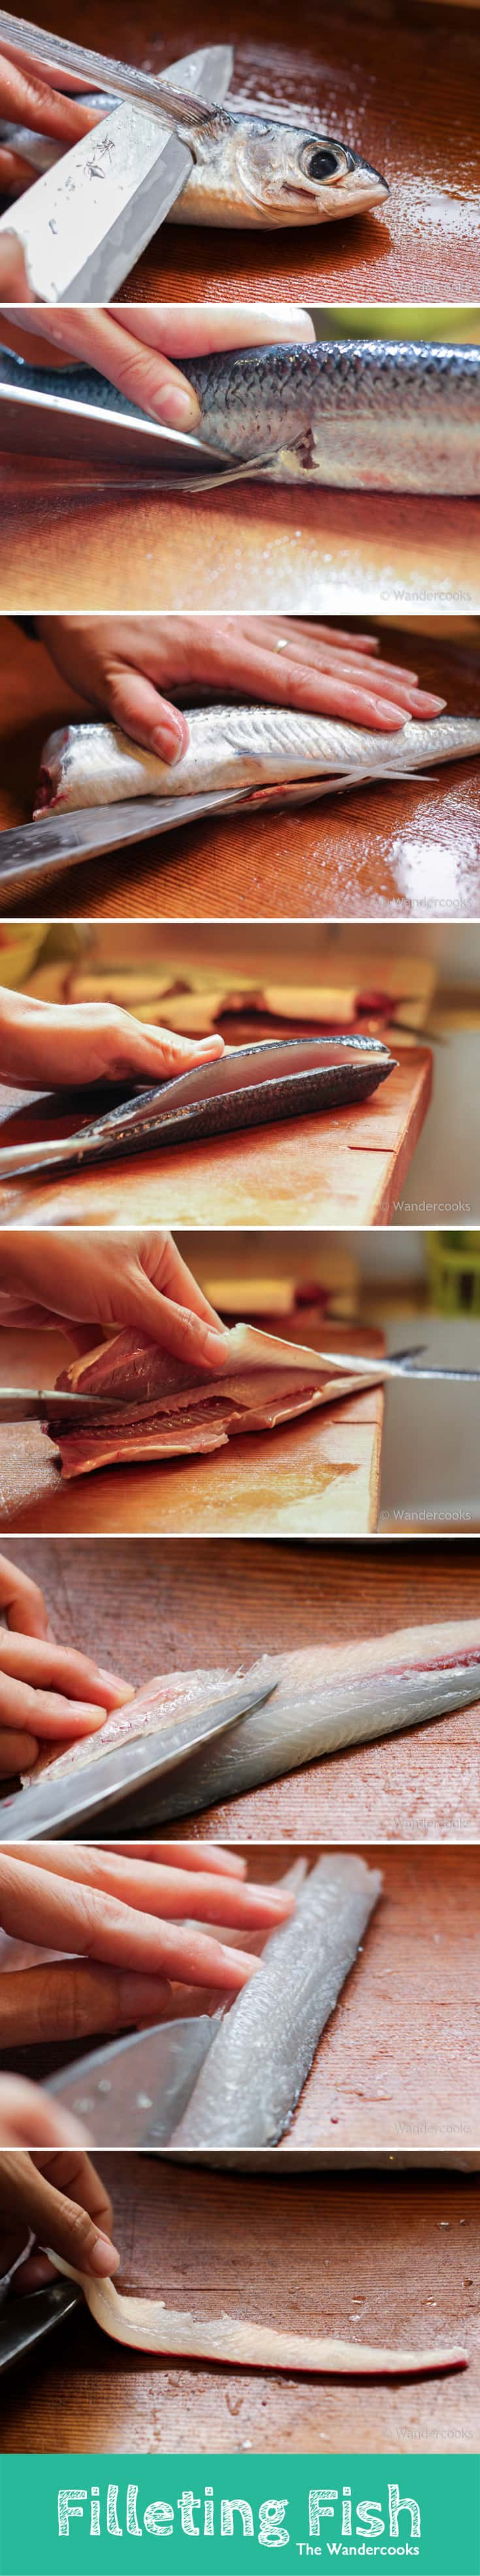 Step-by-step guide to filleting flying fish by the Wandercooks.